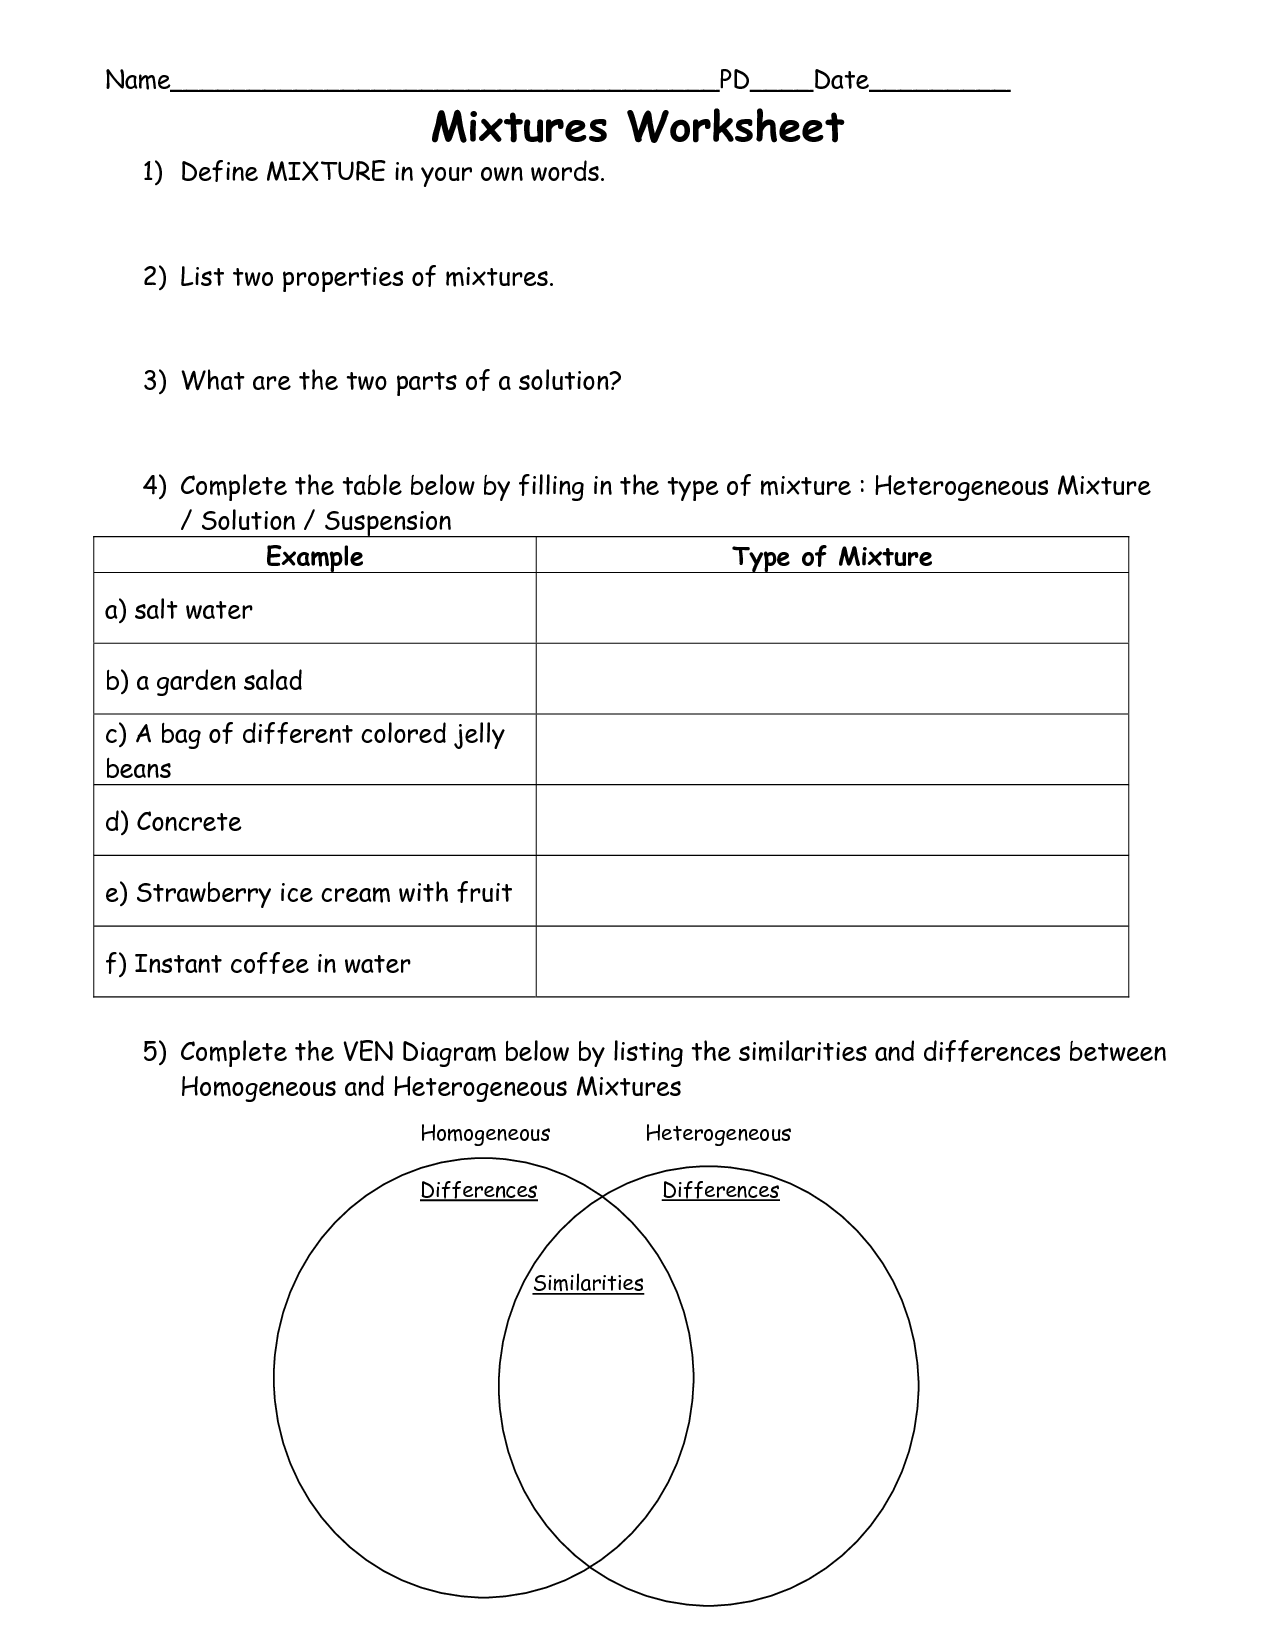 11 Best Images of 5th Grade Science Mixtures And Solutions Worksheets  Mixtures and Solutions